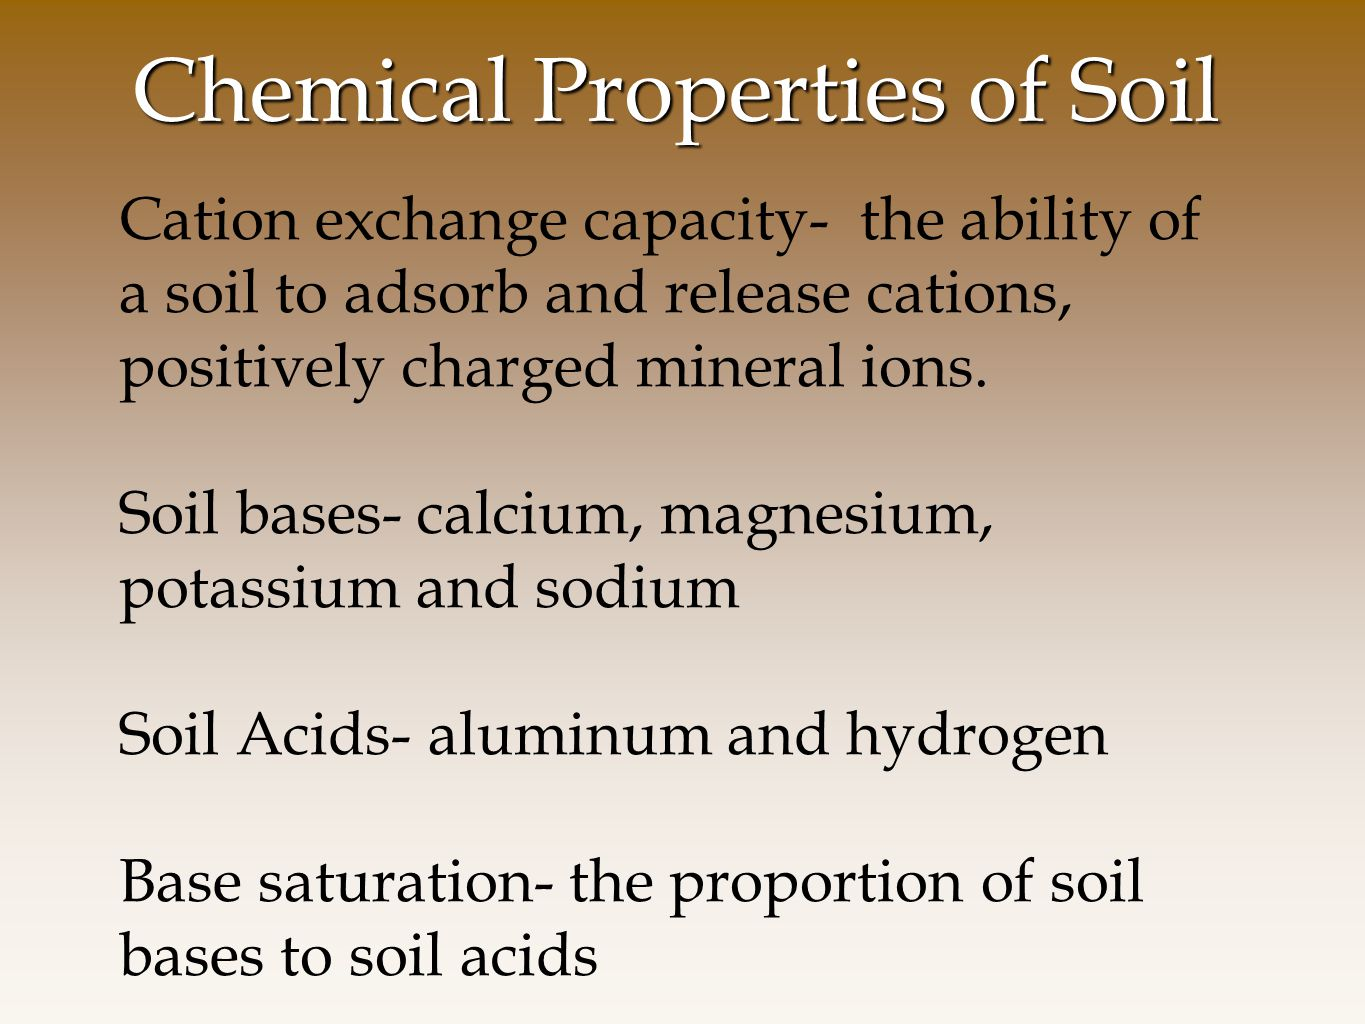 chemicals and properties